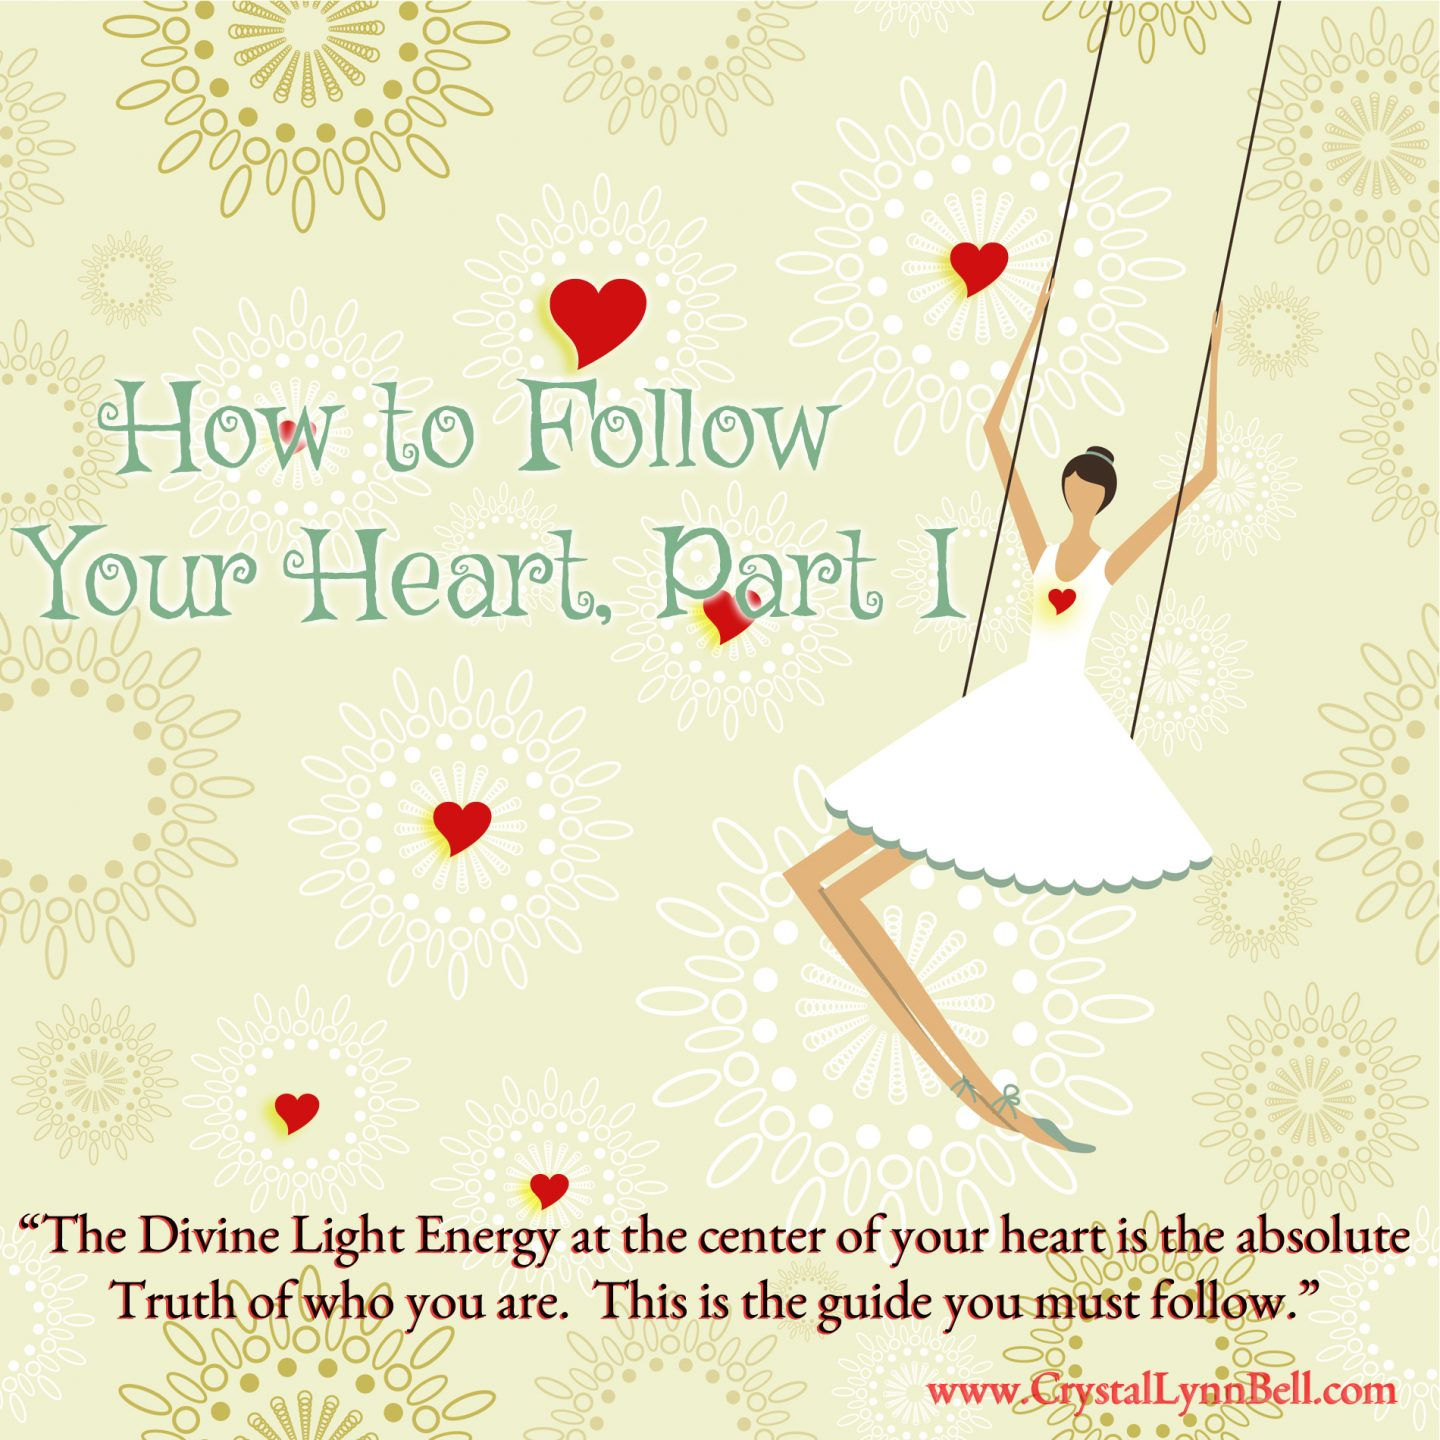 How to Follow Your Heart, Part I:  Know the Truth of Who You Are